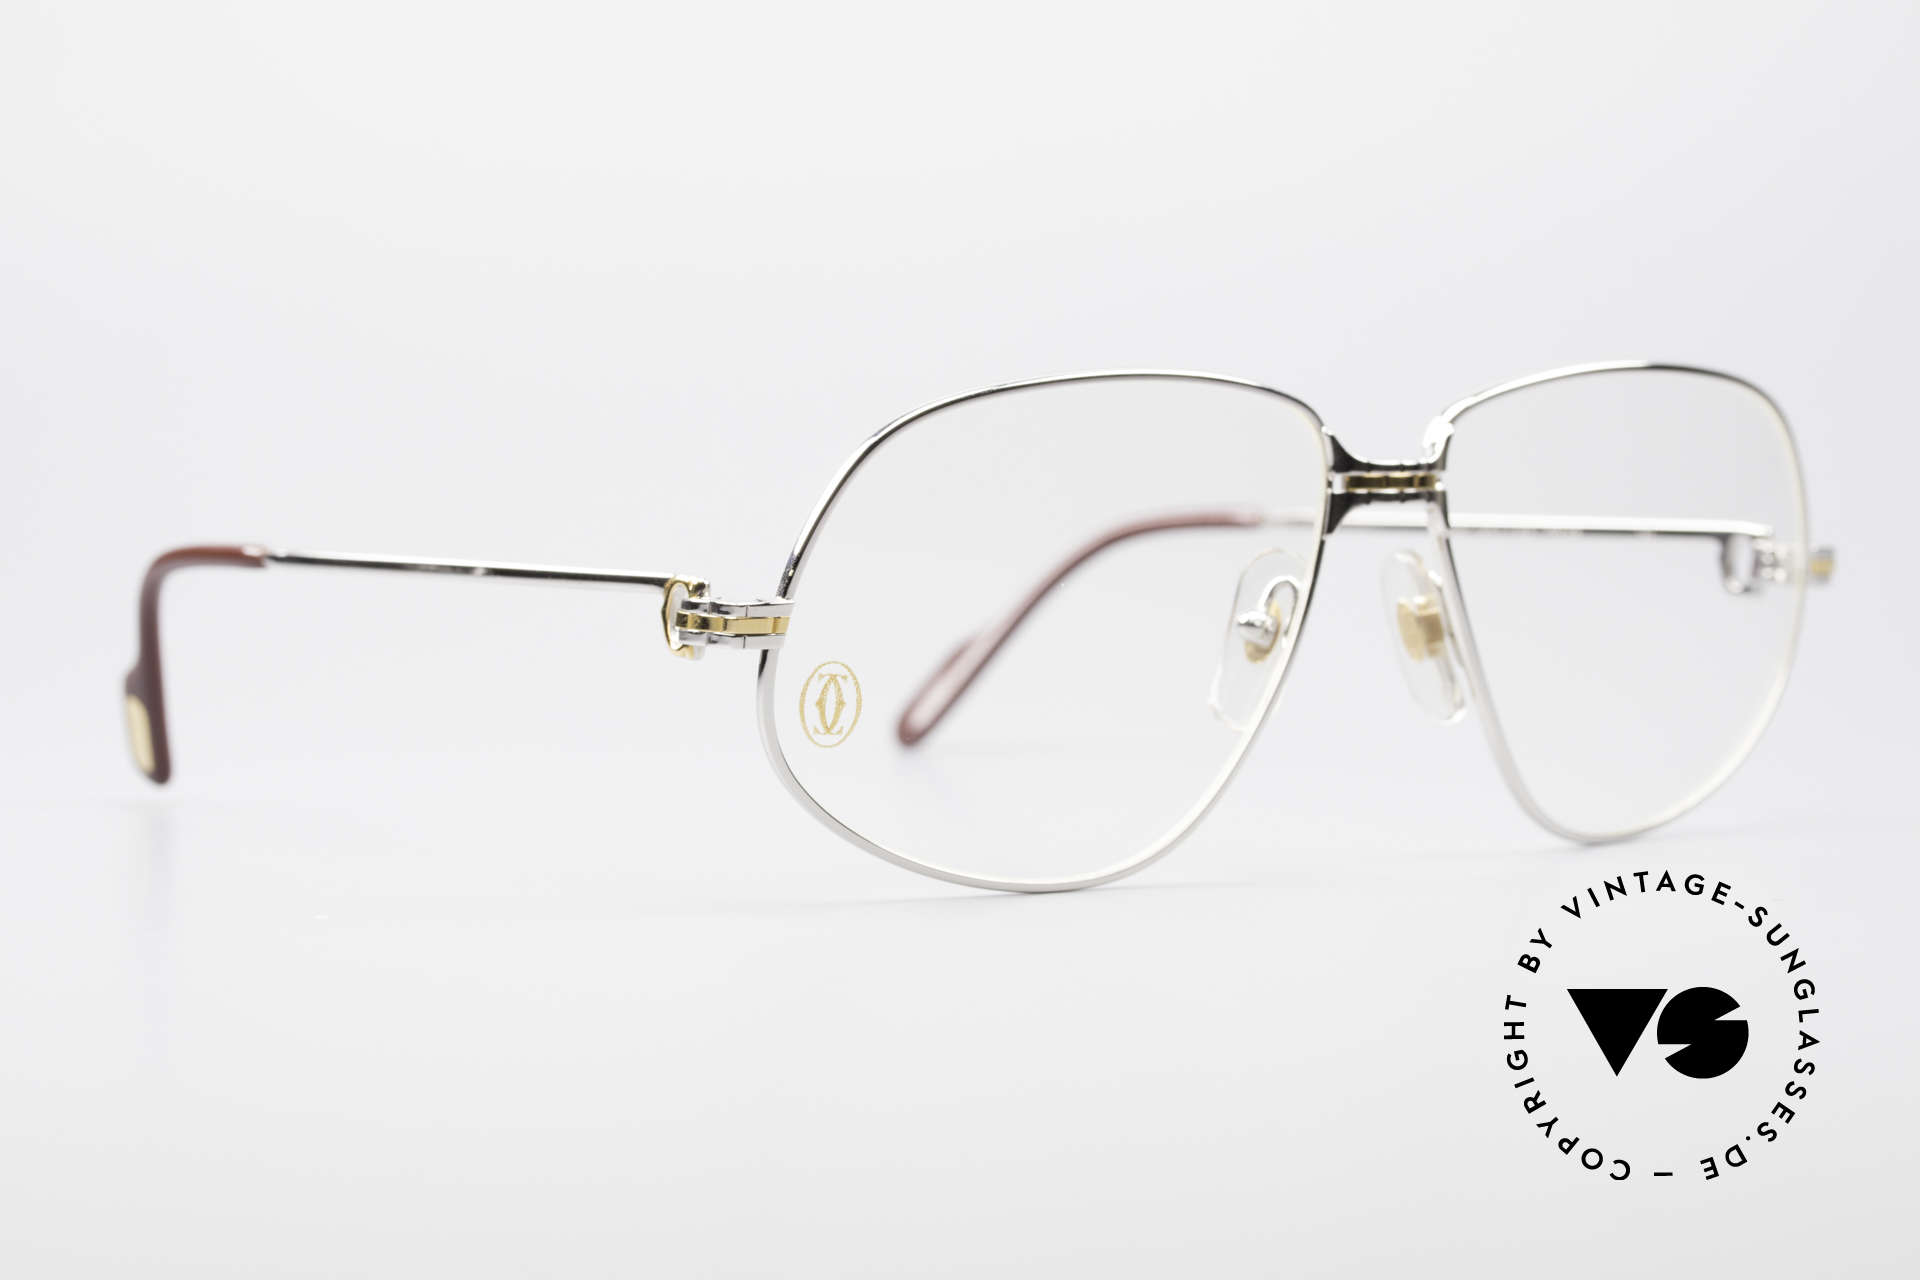 """Cartier Panthere G.M. - L Rare Platinum Finish Frame, mod. """"Panthère"""" was launched in 1988 and made till 1997, Made for Men"""